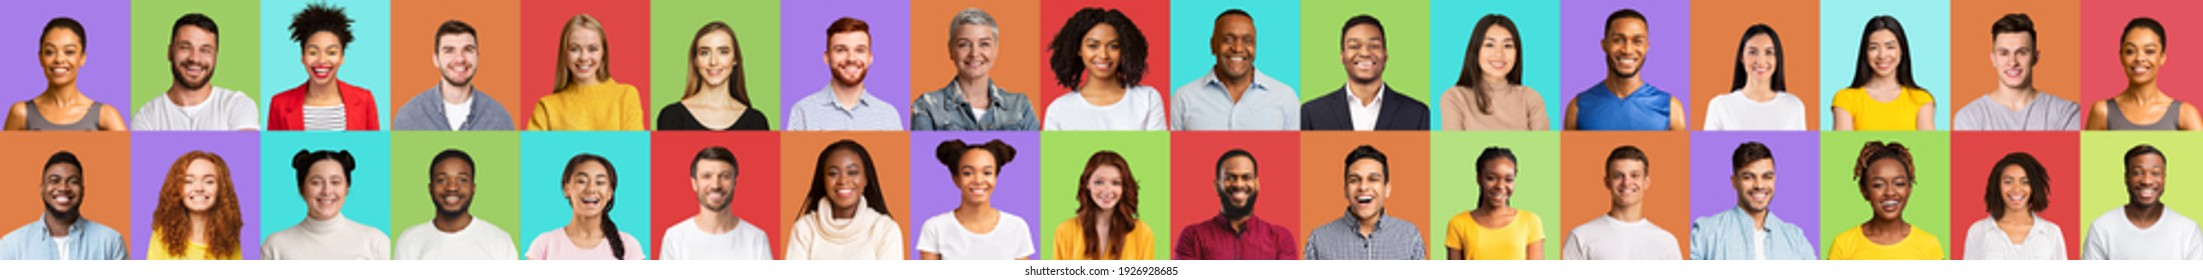 Collection Of Happy Millennial People Faces, Diverse Portraits Collage Of Young Men And Women Of Different Ethnicity And Age Smiling Posing On Colorful Studio Backgrounds. Panorama